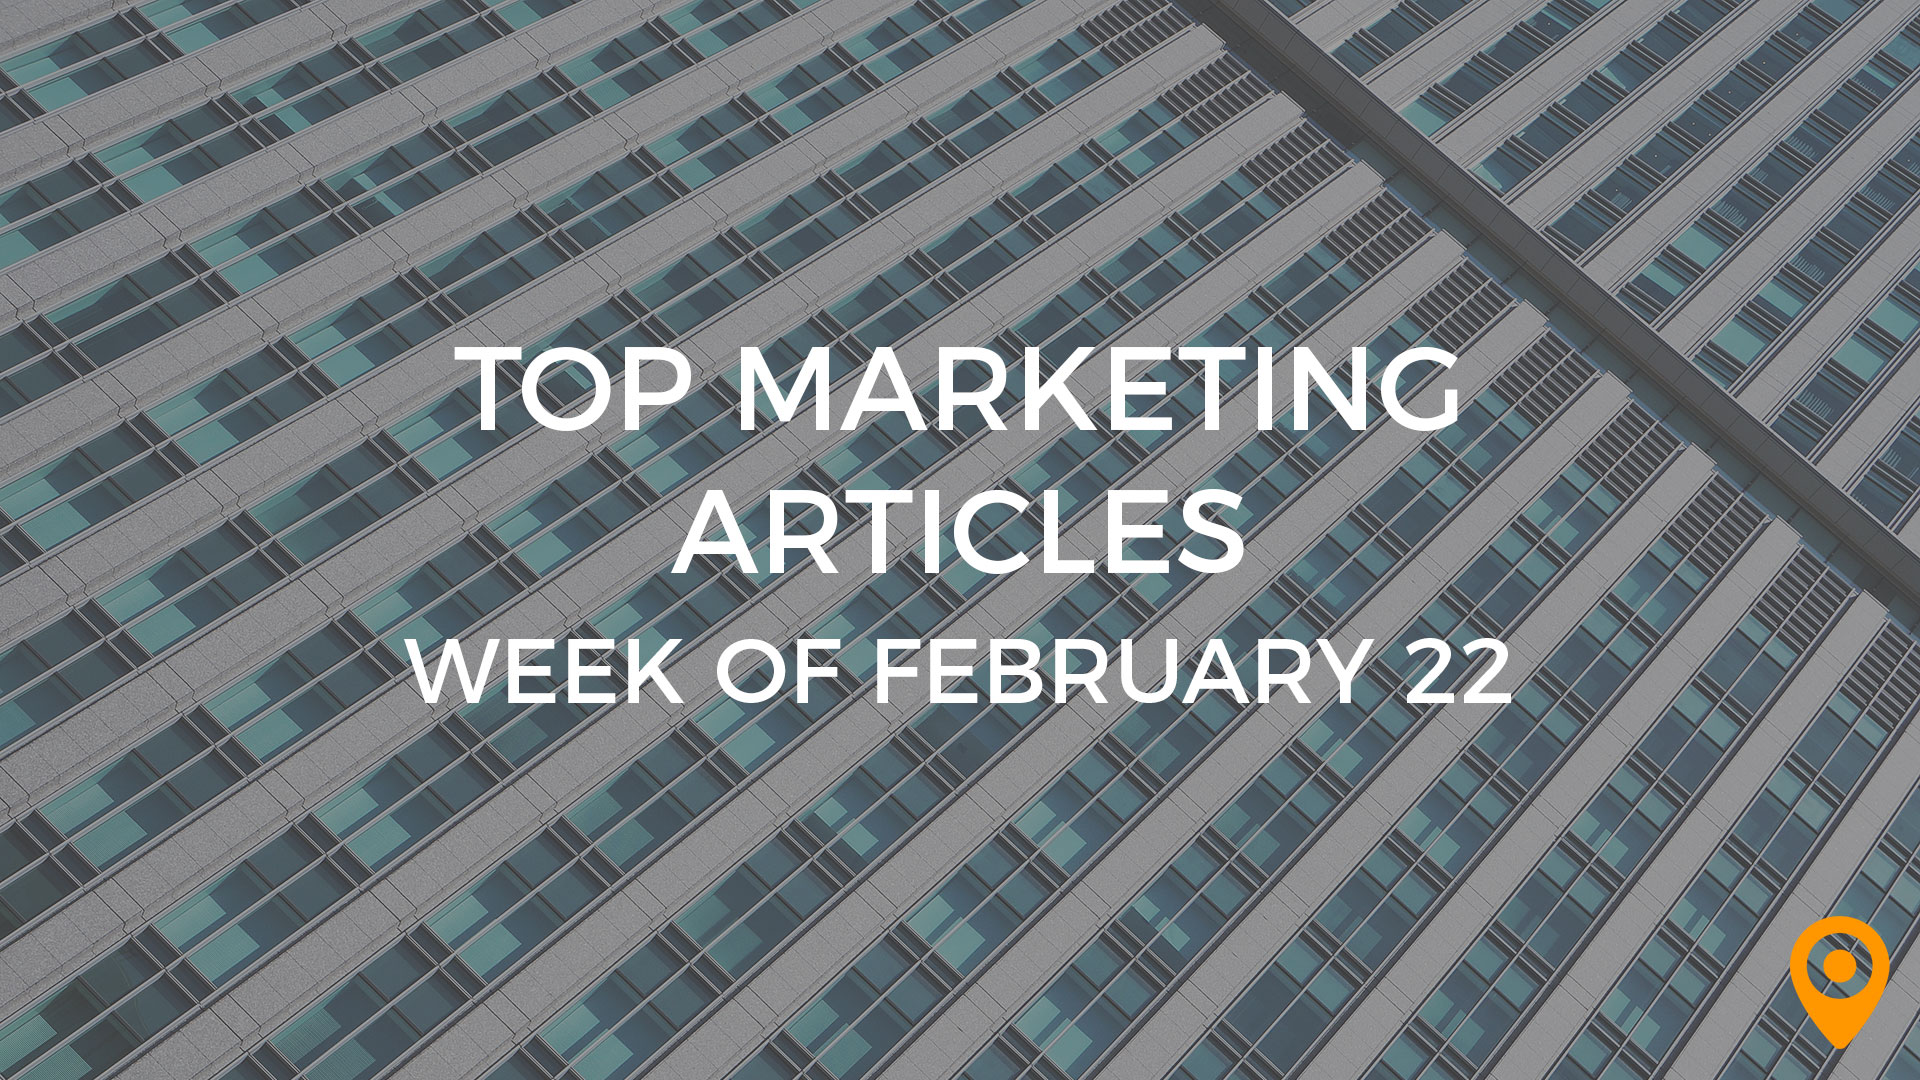 Top Marketing Articles Week of Feb 22